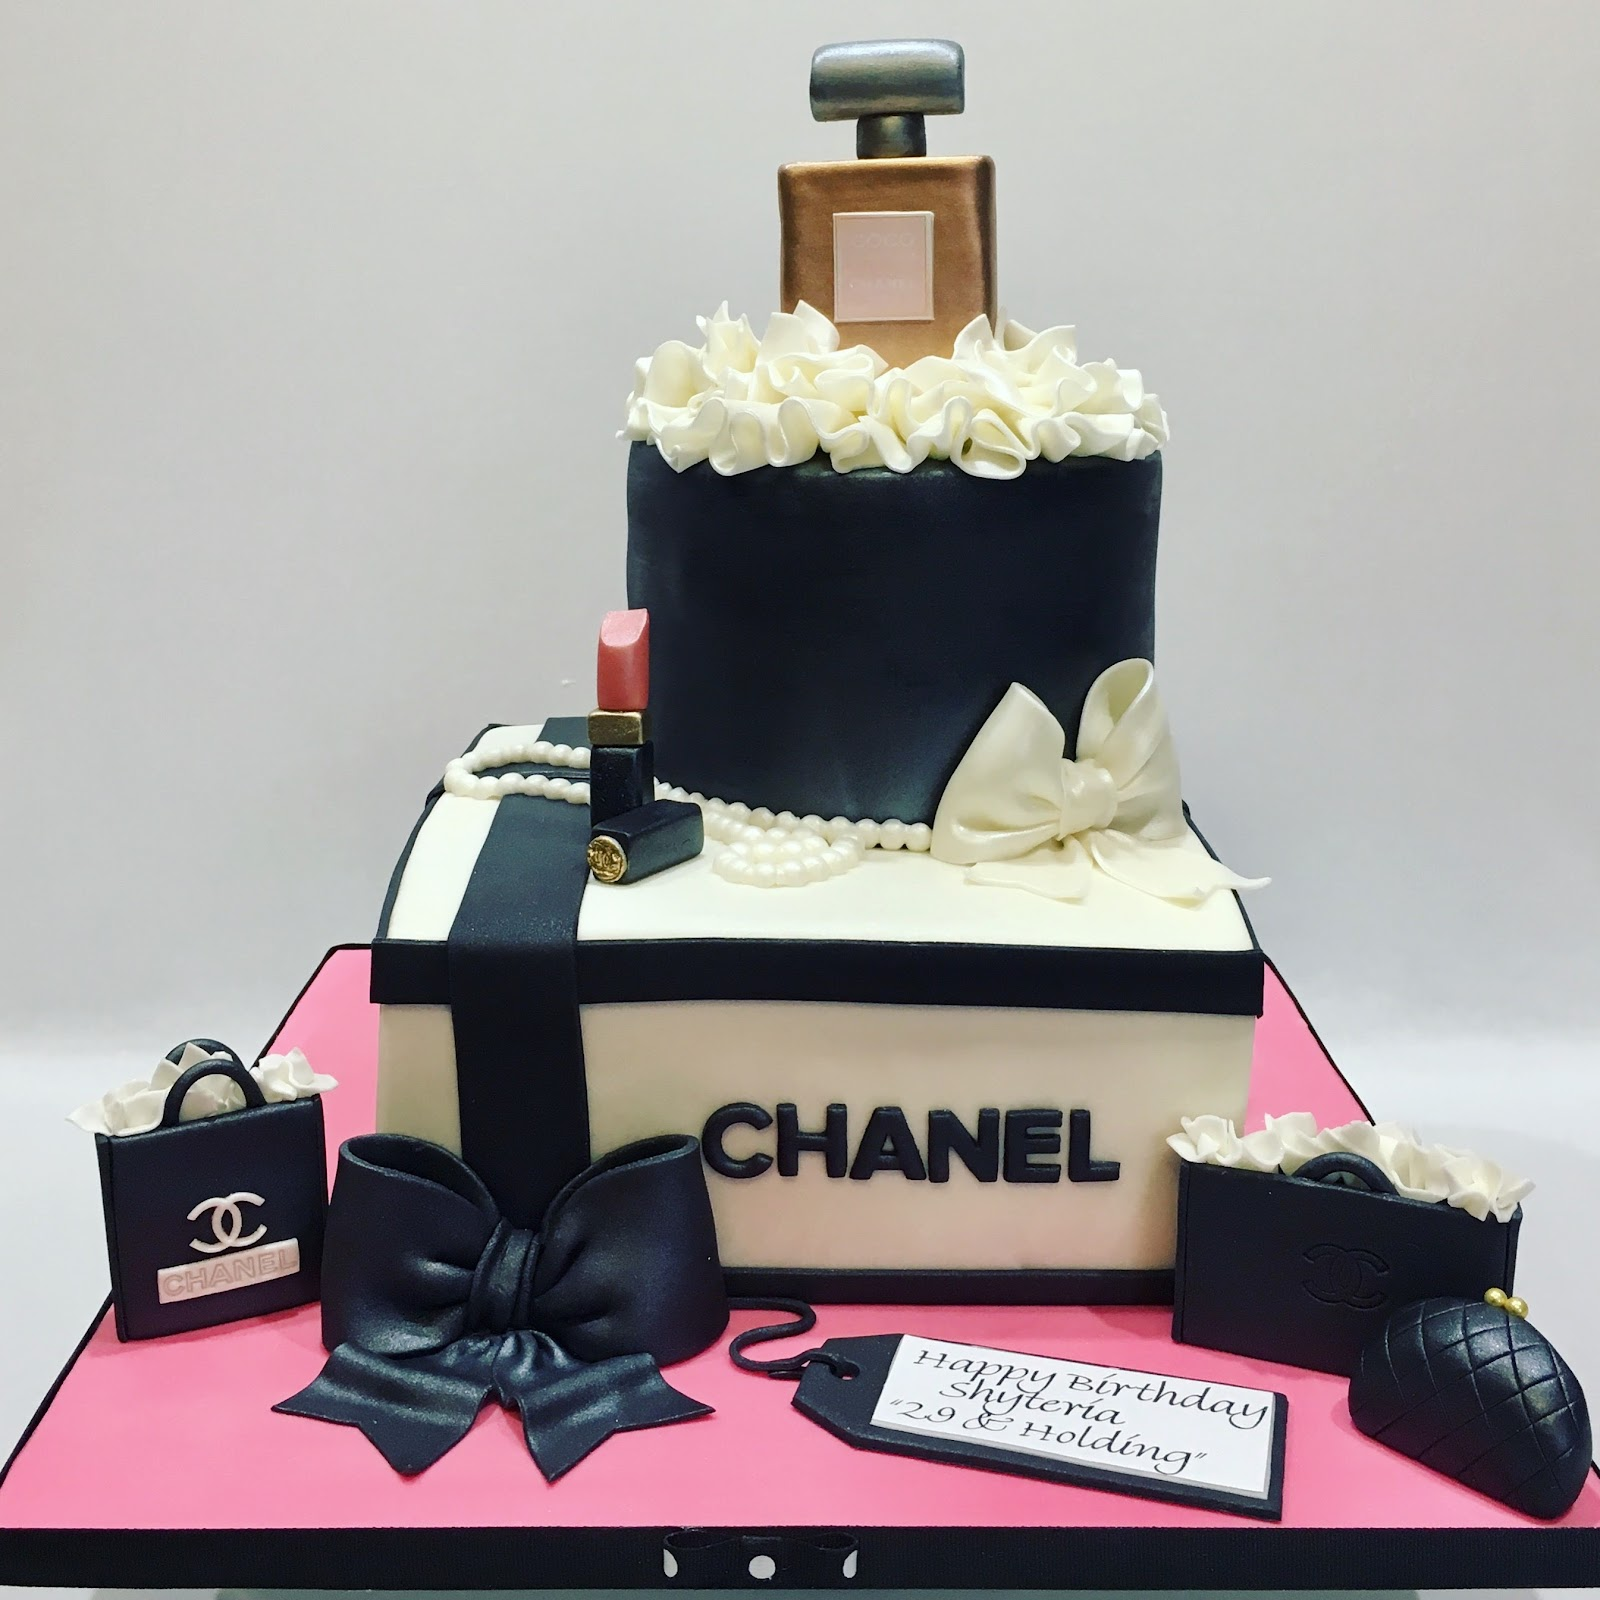 Mymonicakes Chanel Gift Box Cake With Perfume And Make Up Sculptures